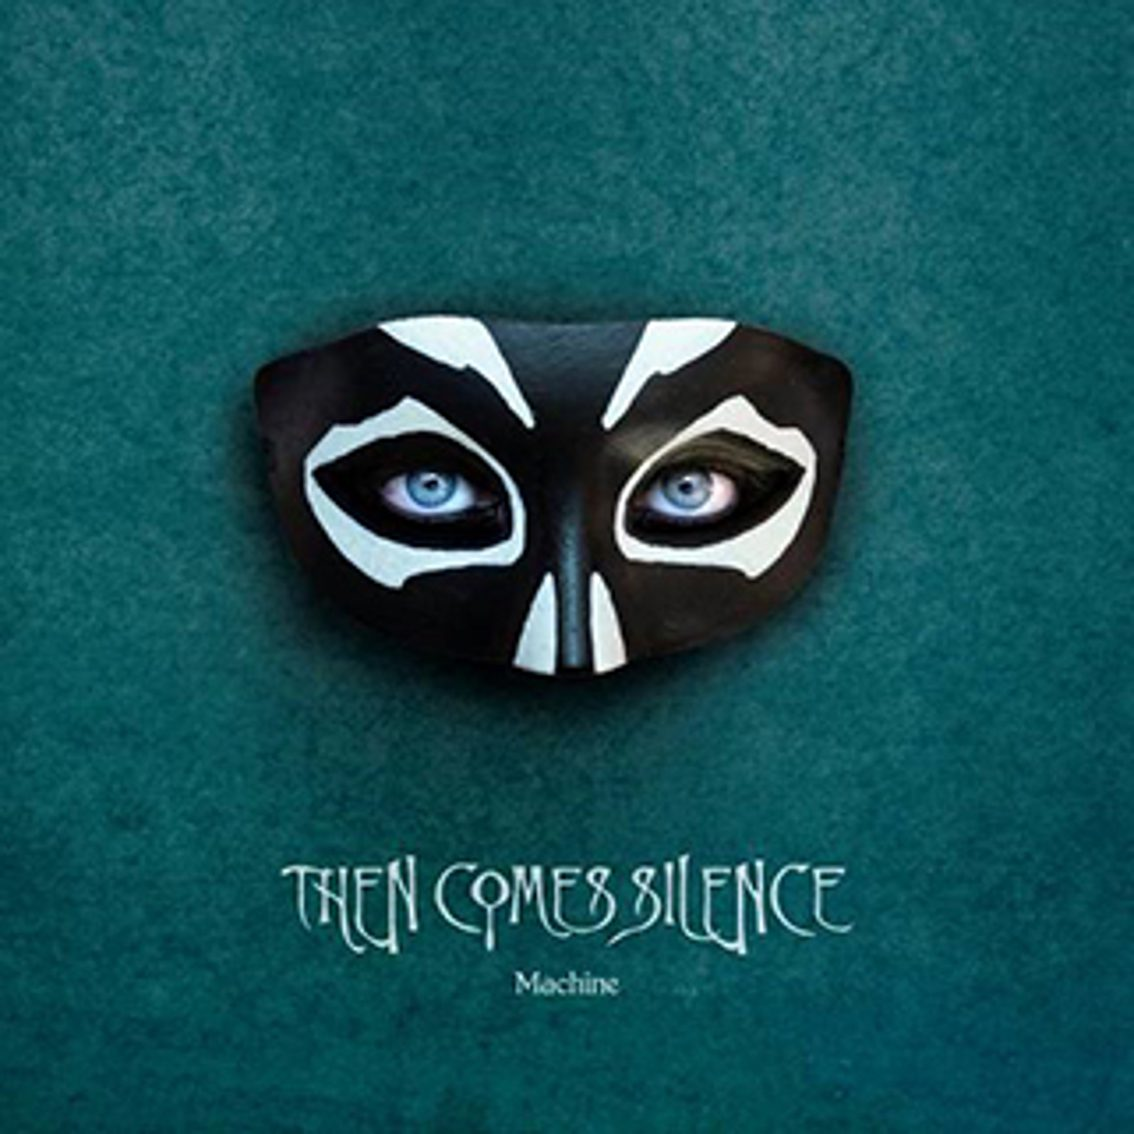 Forthcoming album Then Comes Silence mixed by the Stefan Glaumann (Rammstein, Killing Joke, Deathstars, The 69 Eyes)